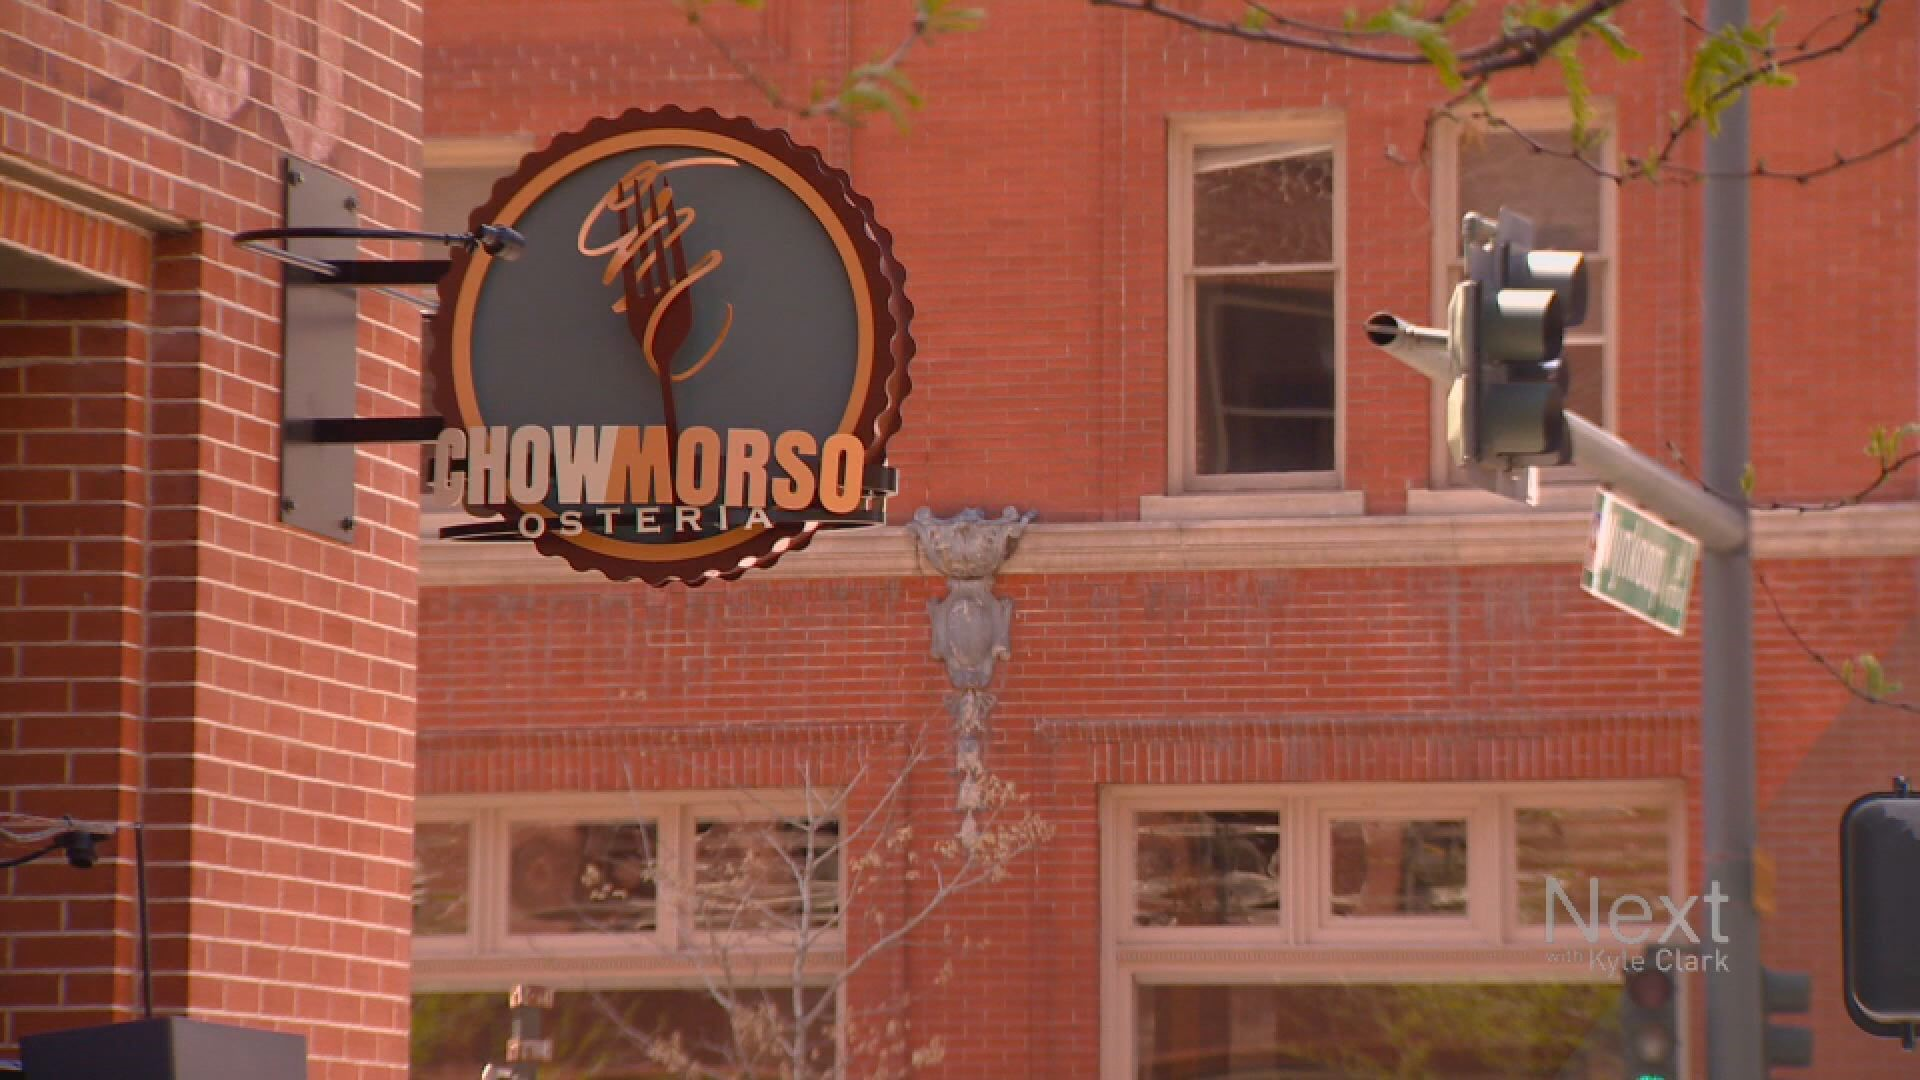 Restaurants Bars In Denver Colorado With Food Delivery Takeout 9news Com